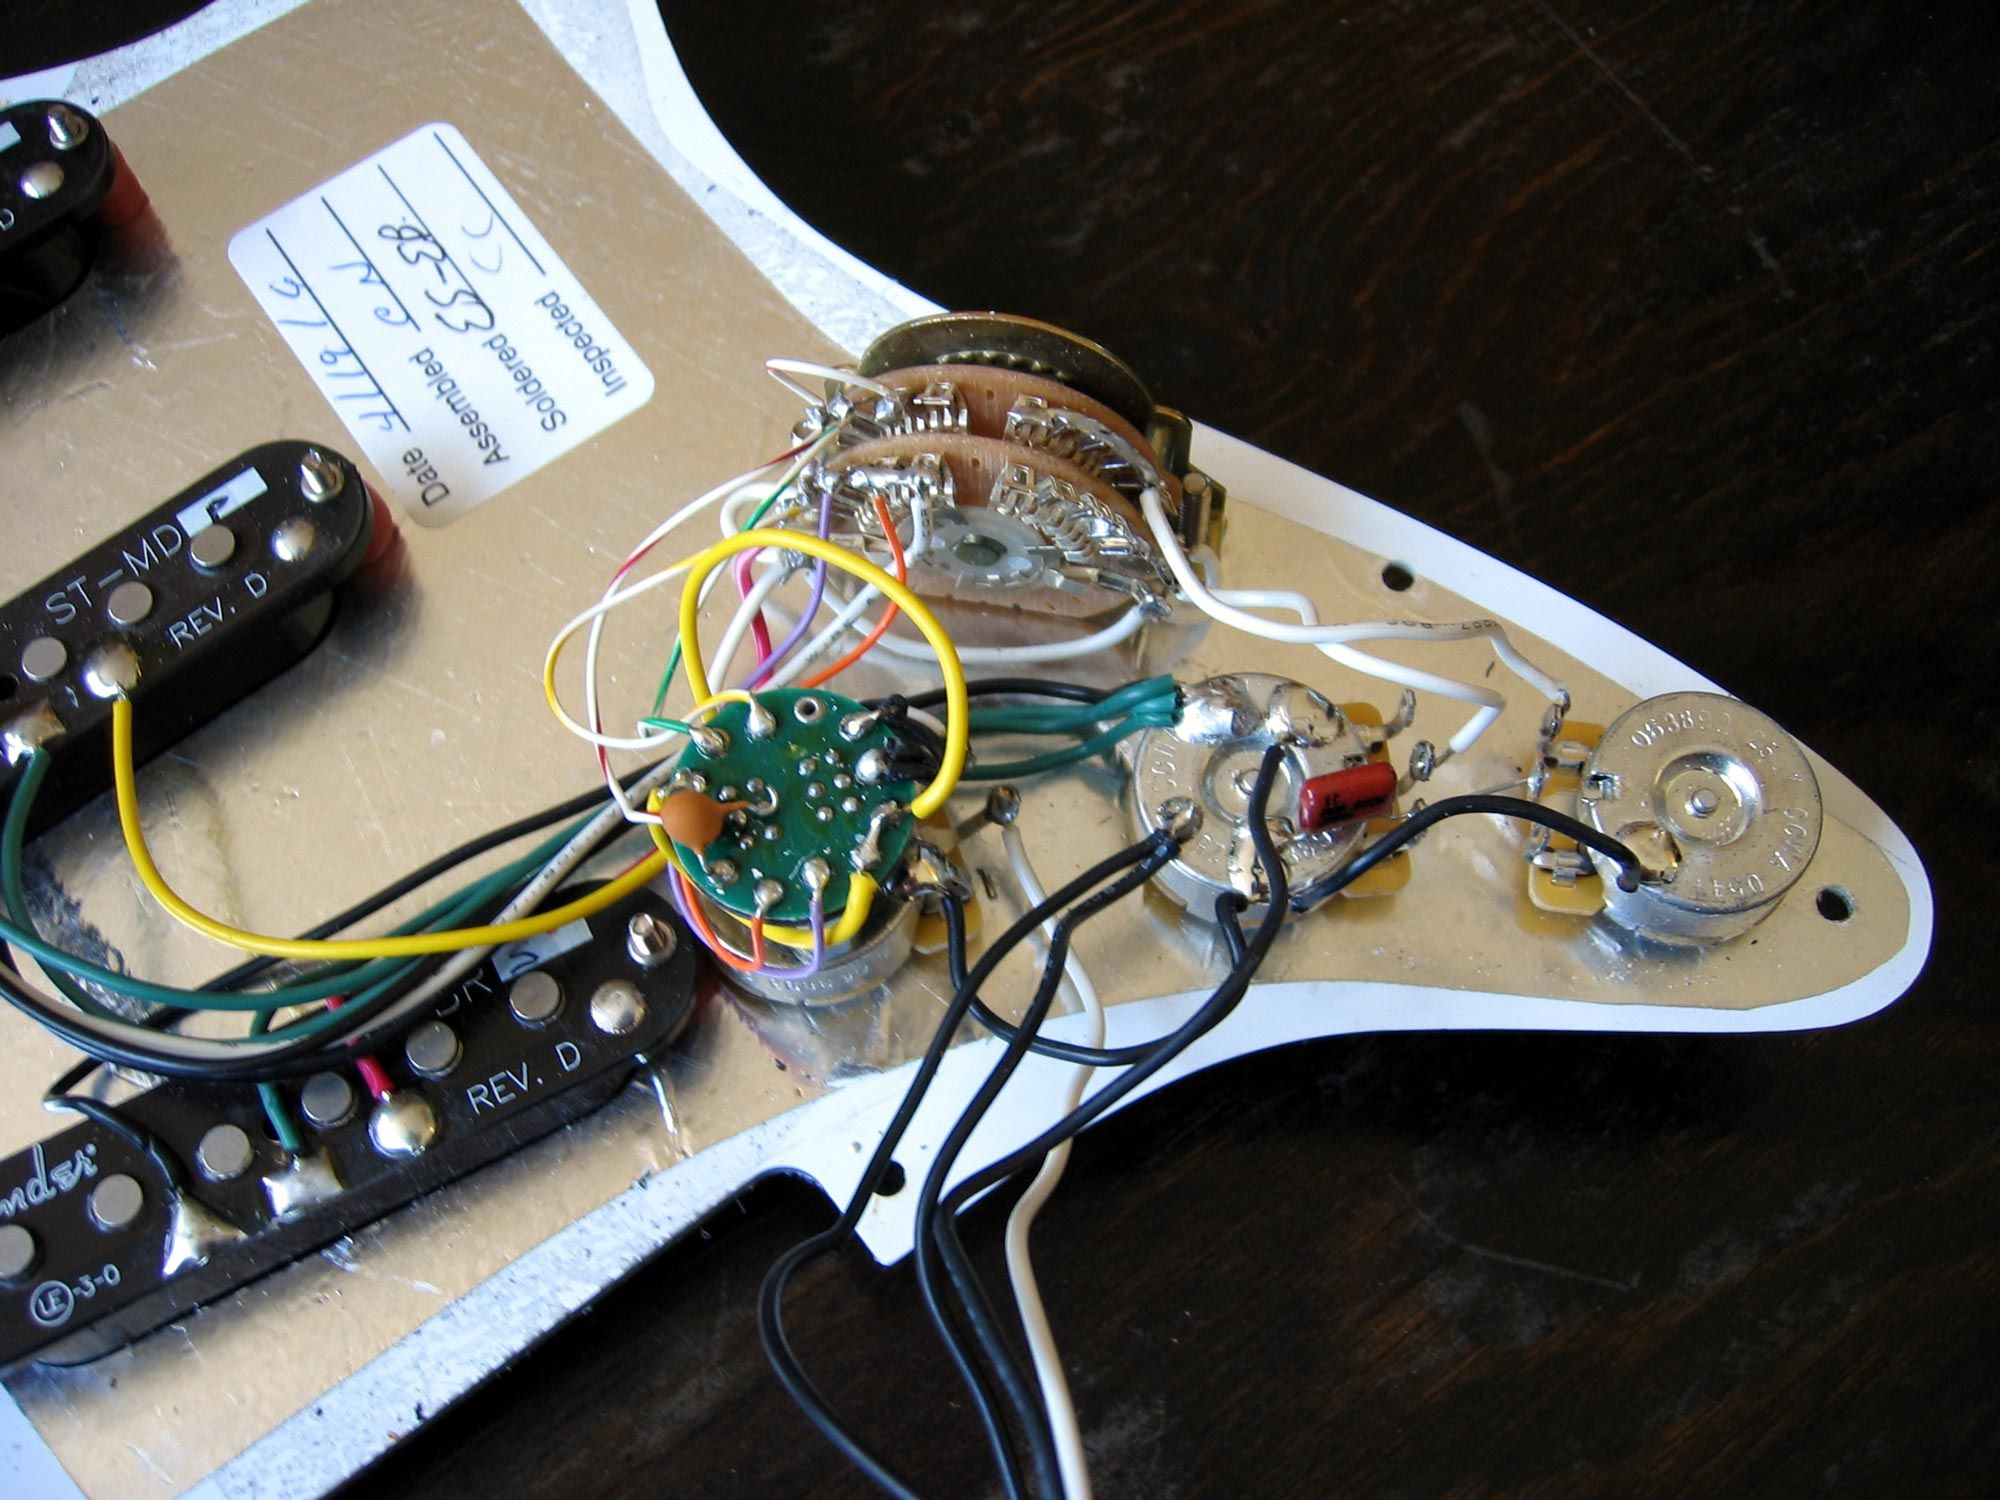 Wiring Diagram For Fender Strat Guitar On Stratocaster Wiring Diagram